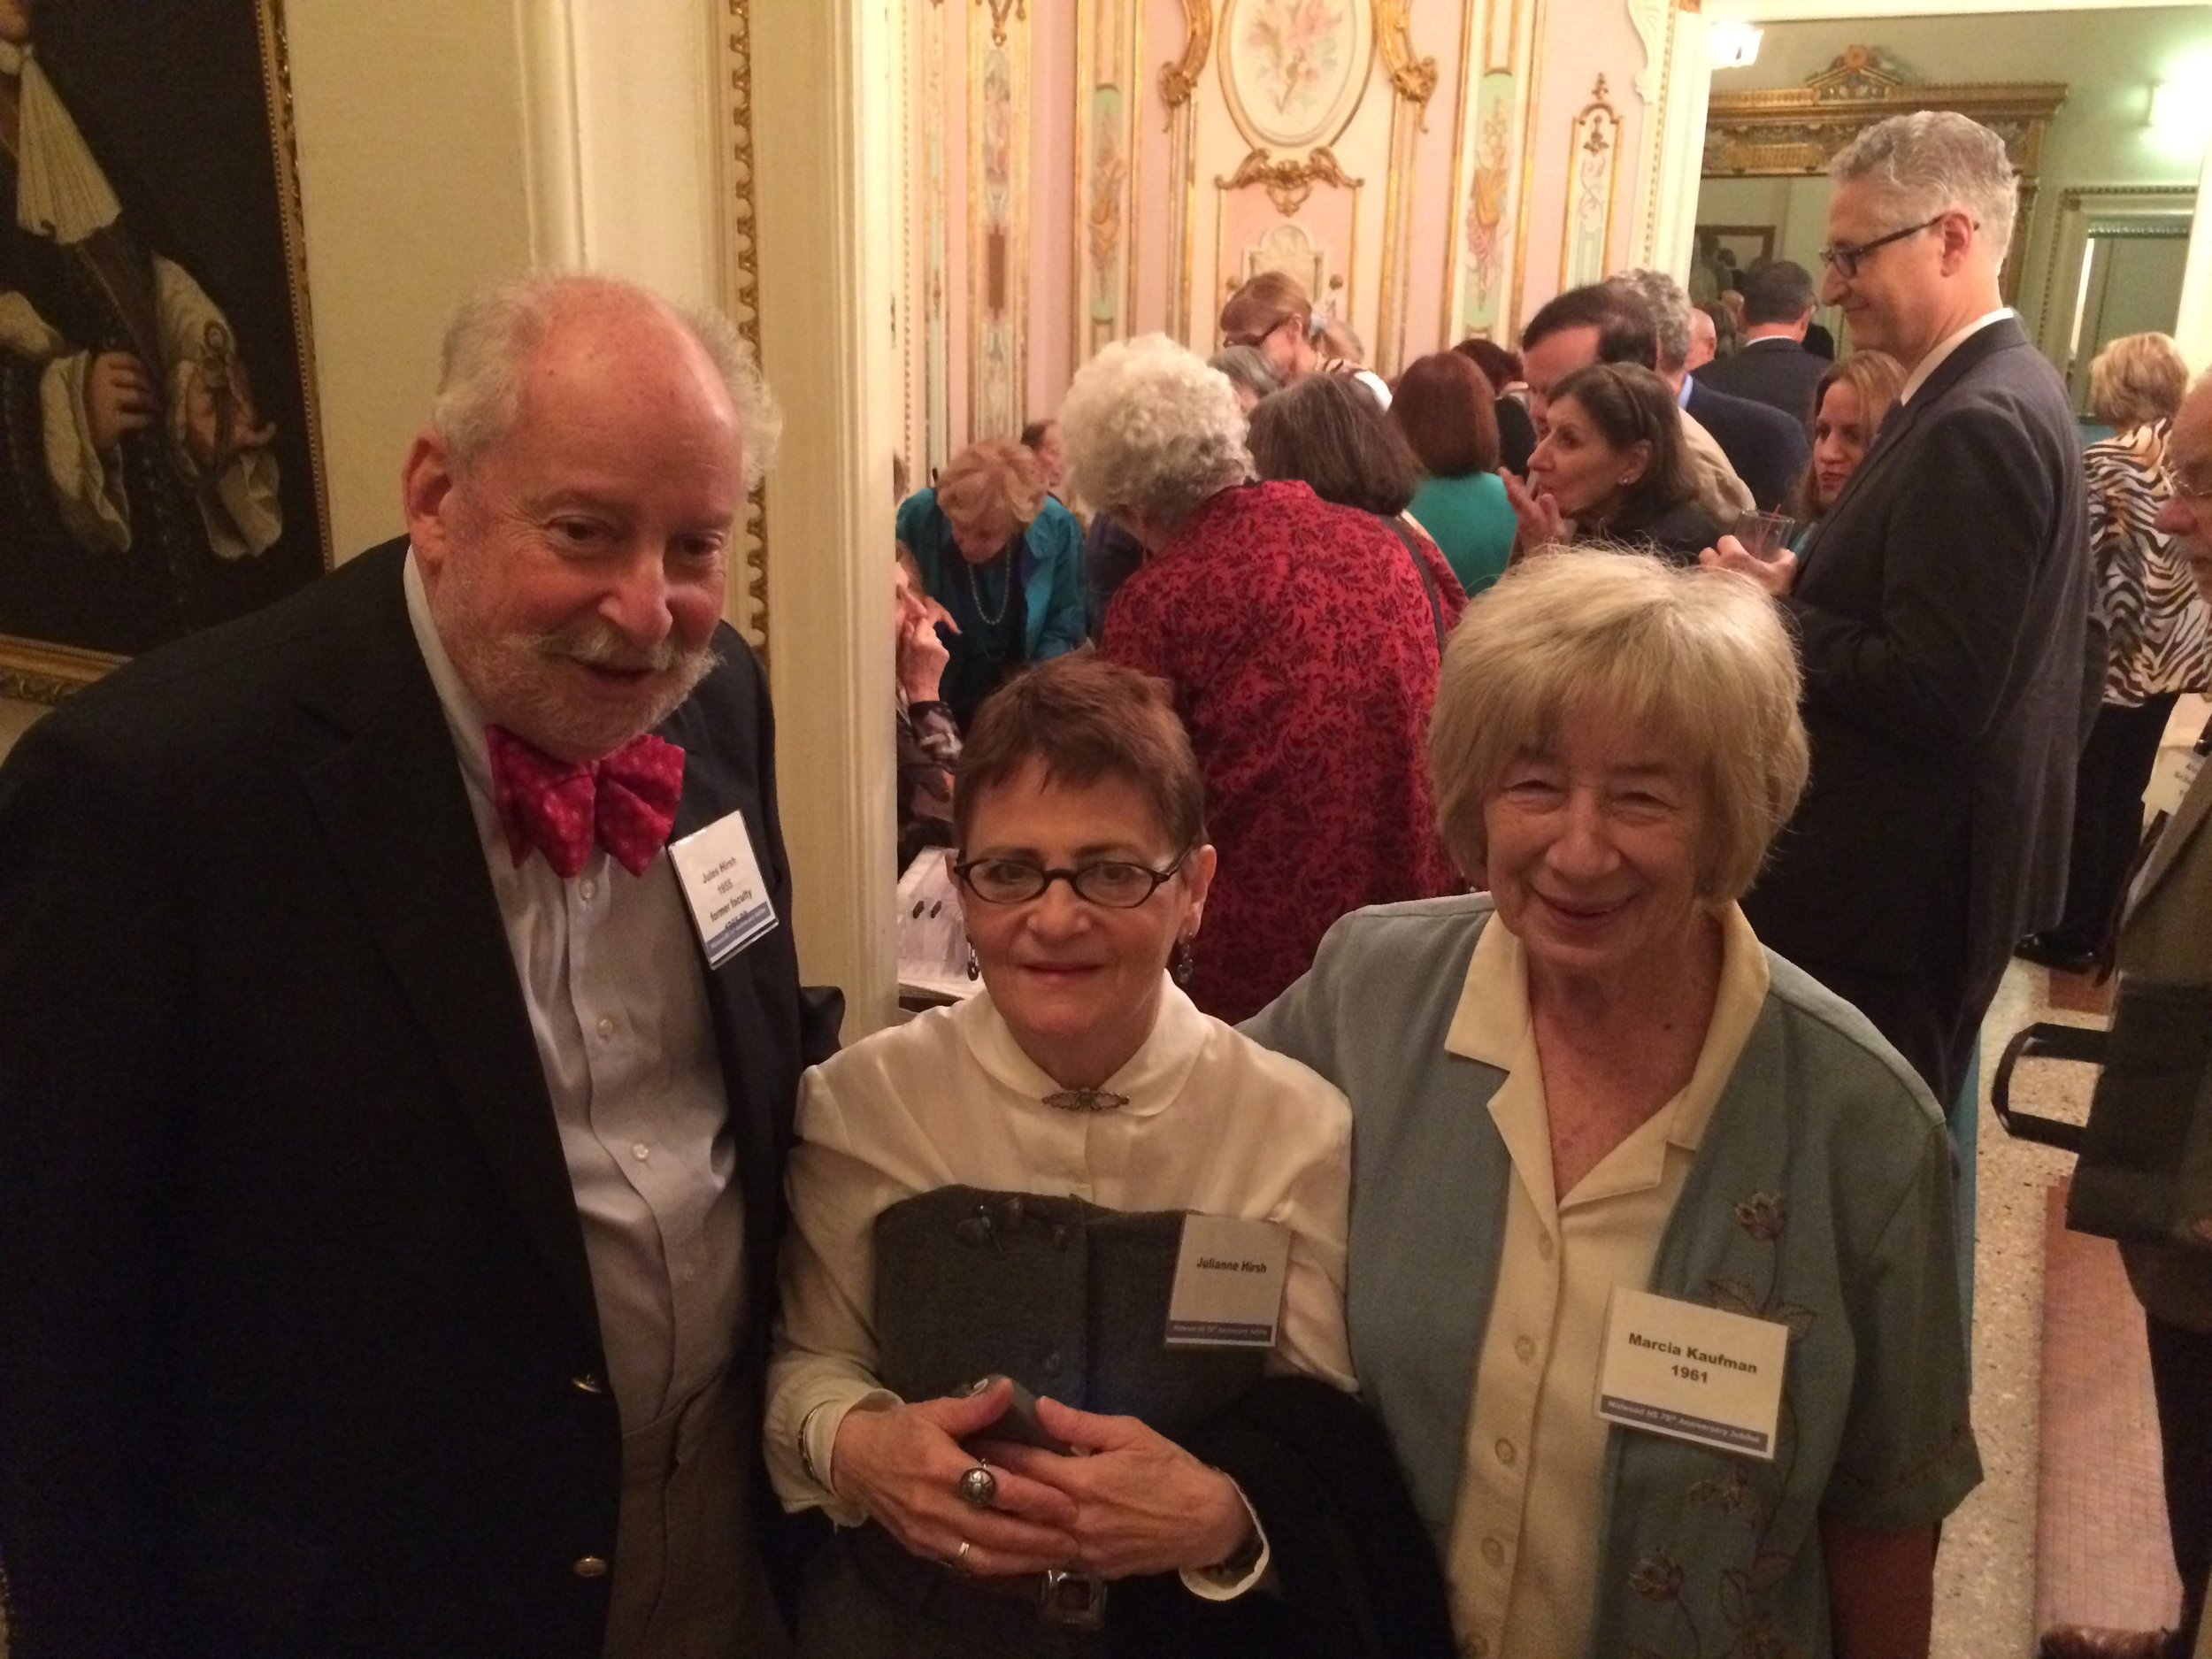 Jules Hirsh '51, Julianne Hirsh, & Marcia Kaufman '61 AKA Ms. Midwood